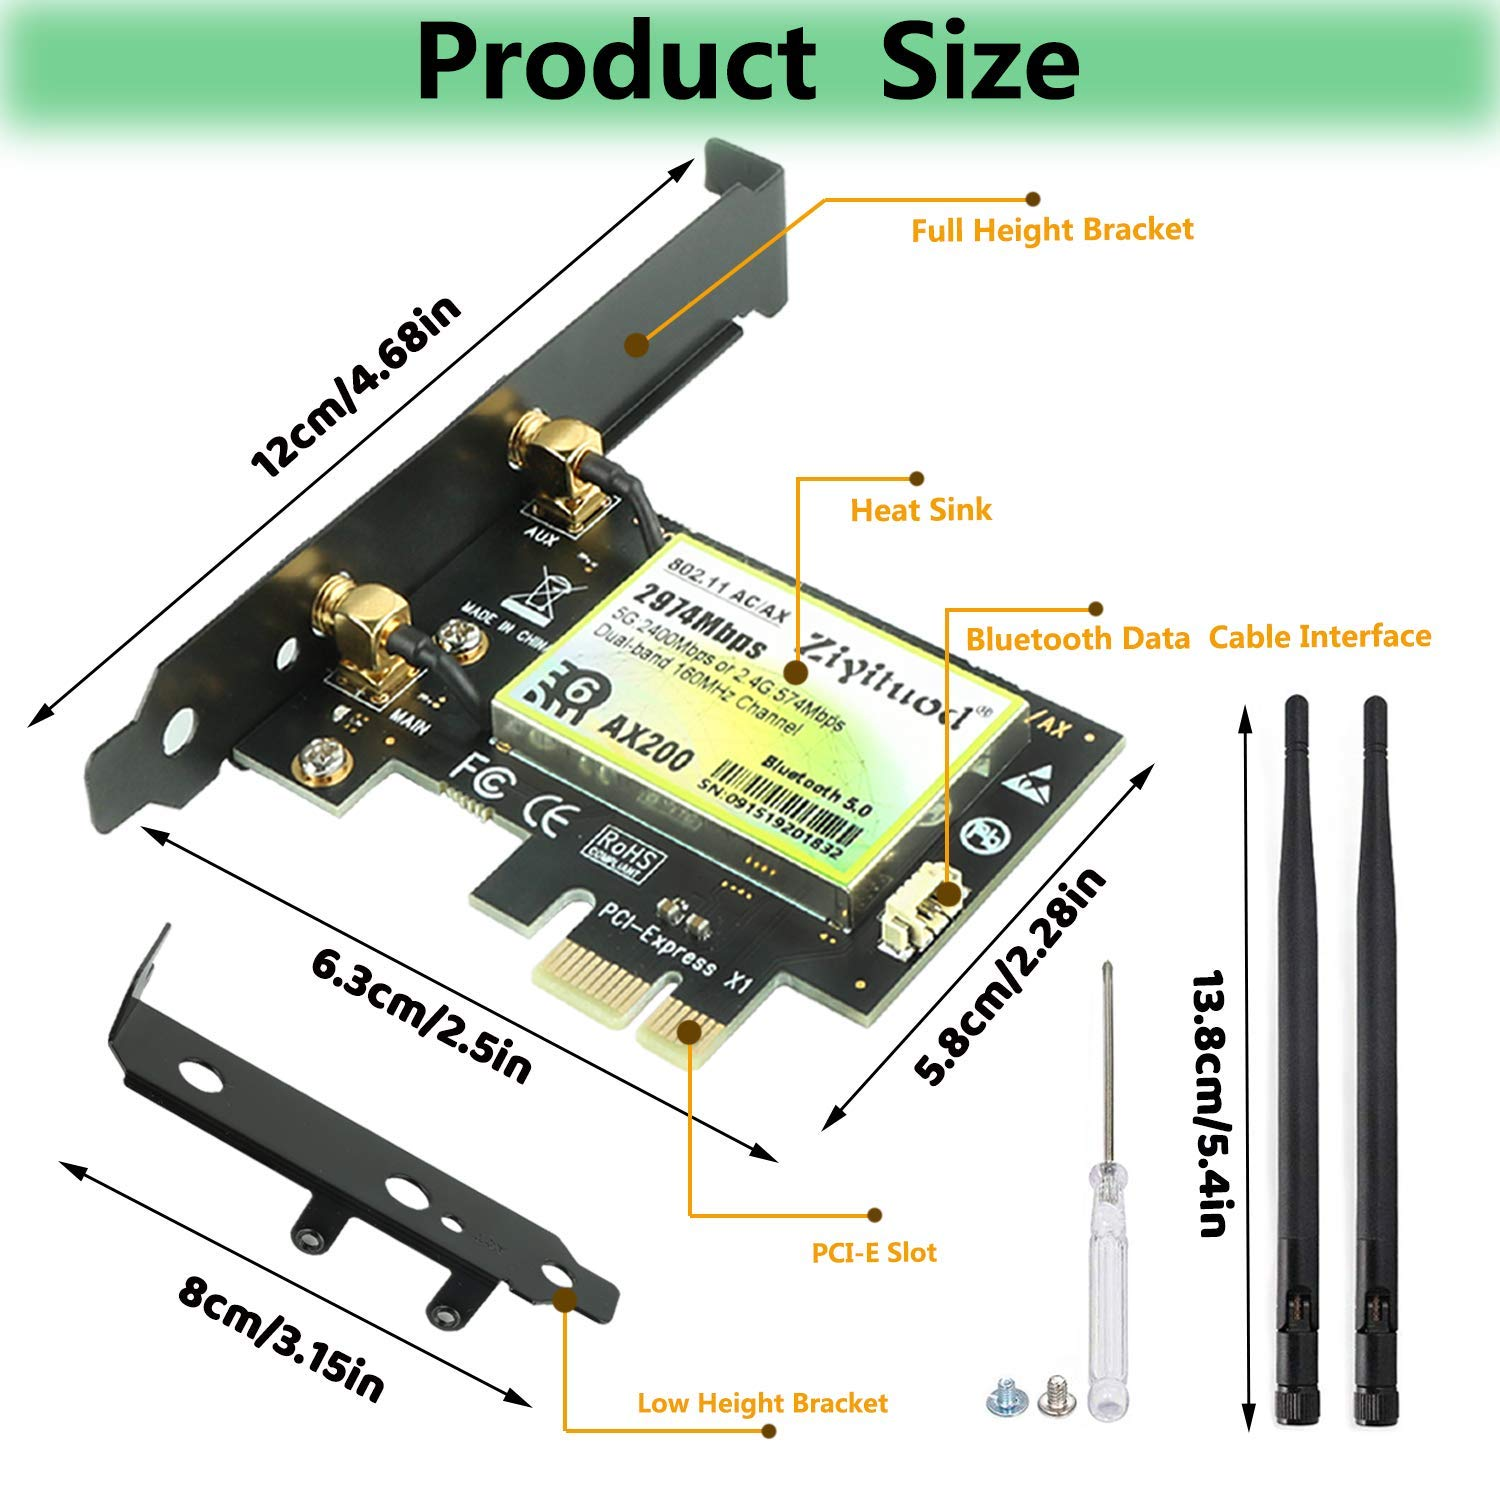 AX2974Mbps Wireless Adapter 802.11ax PCIe WiFi Card with Bluetooth5.0 /… 2974Mbps AX200 2.4GHZ+ 5GHZ for PC Ziyituod AX200 WiFi 6 Card Support Windows 10 64bit,Chrome OS and Linux 4X4 Dual-Band